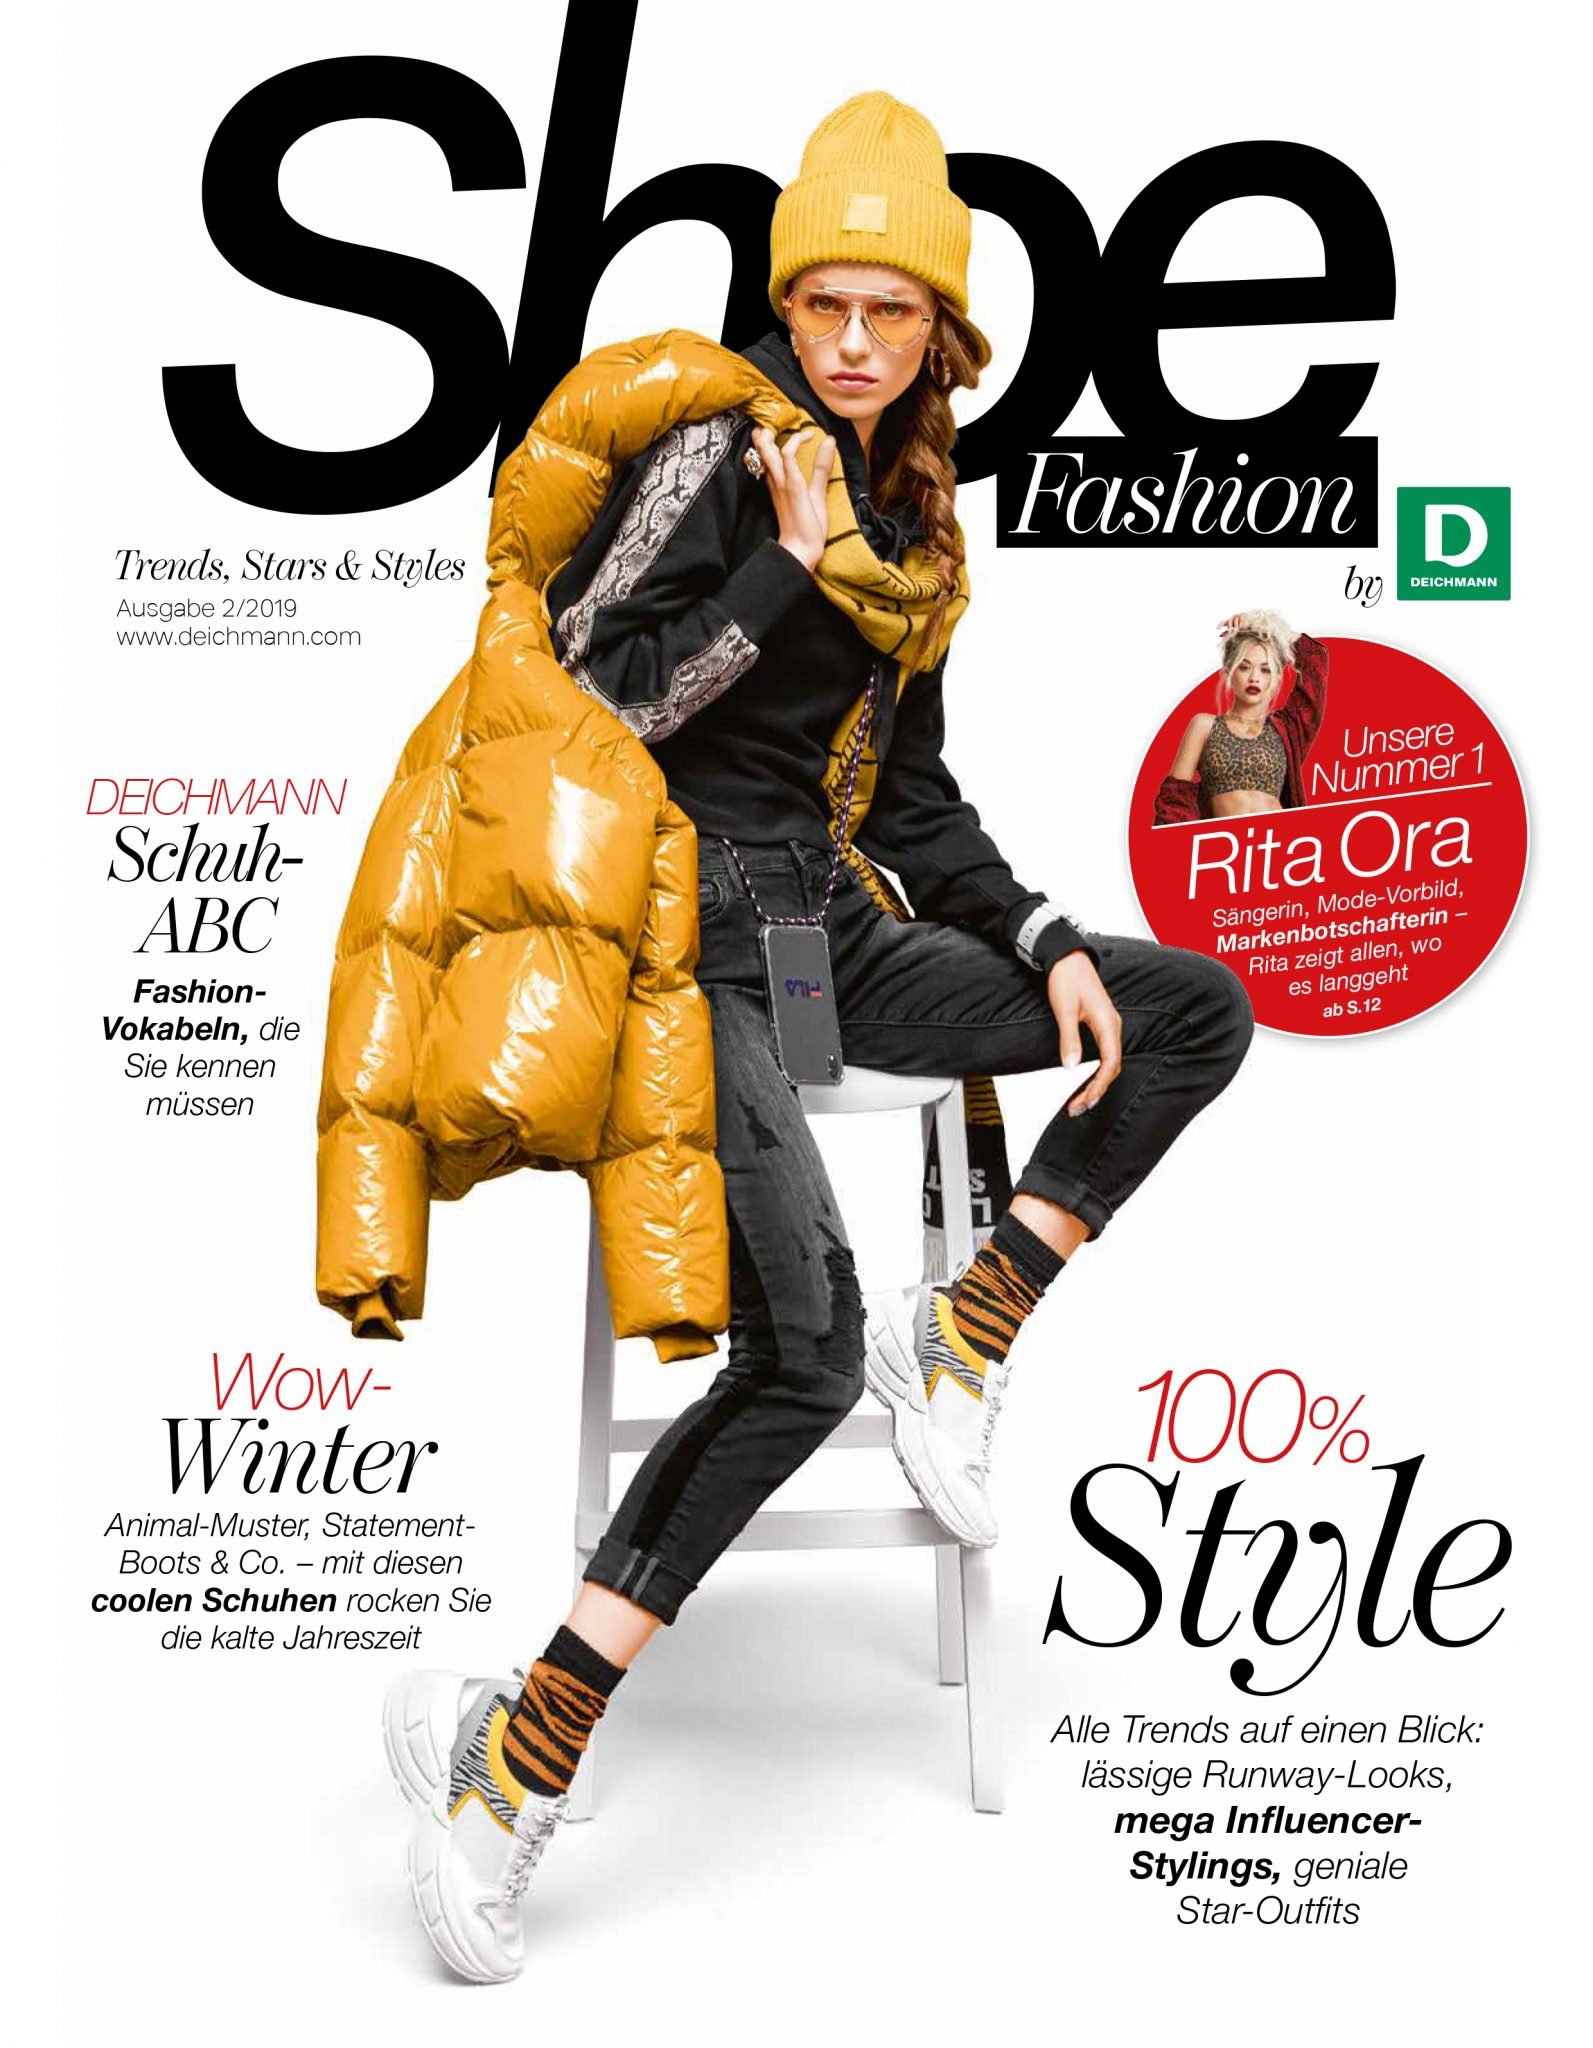 Deichmann Shoefashion Issue 02/2019